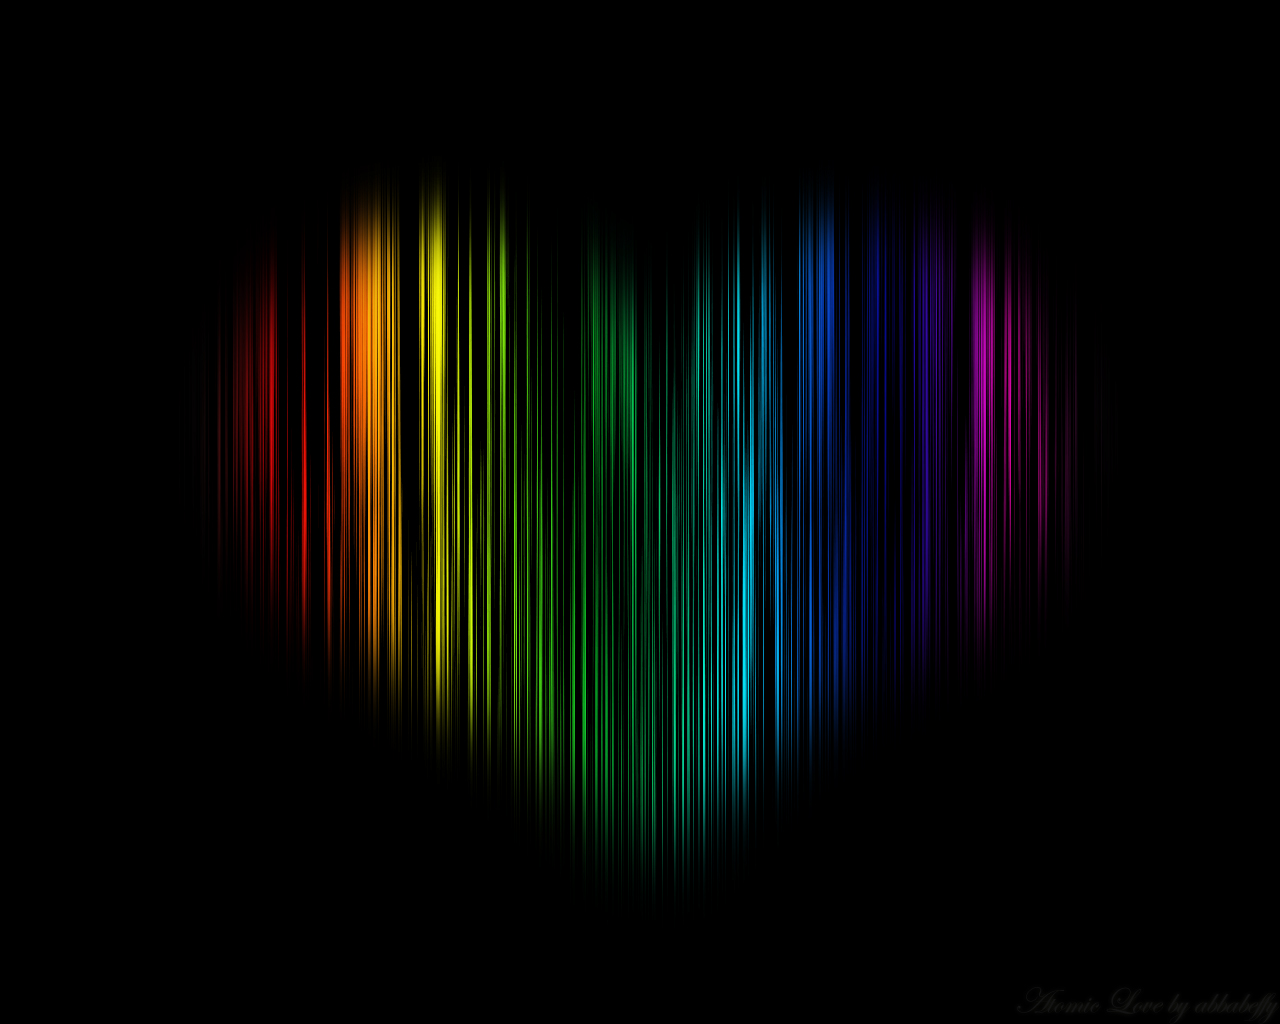 black-rainbow-wallpapers-55286-3186430